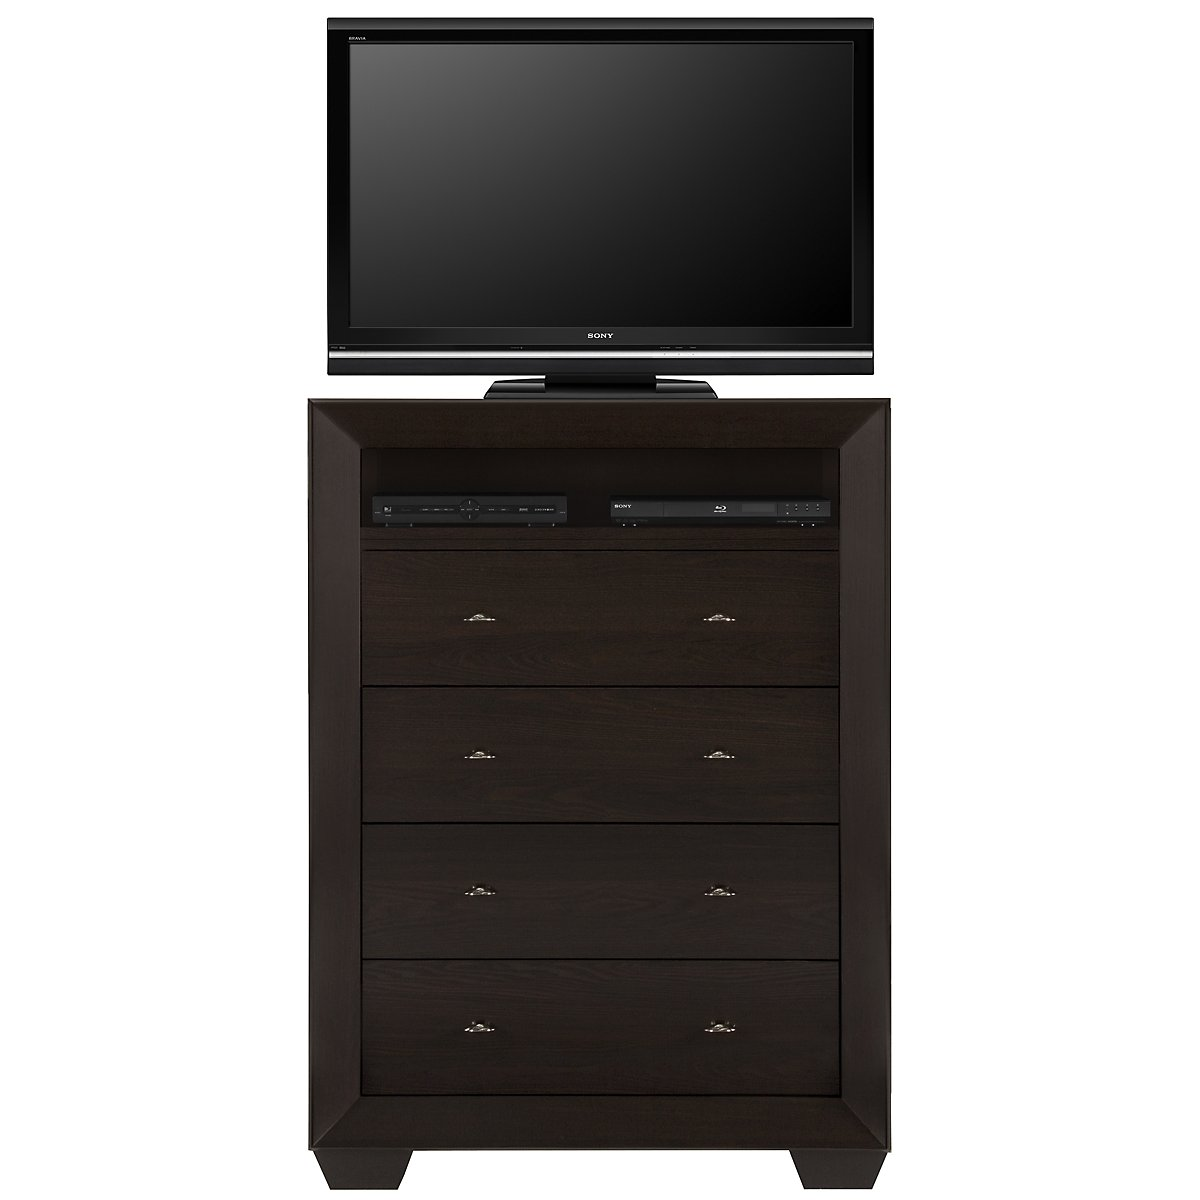 Adele2 Dark Tone Large Media Chest. City Furniture   Bedroom Furniture   Media Chests  Armoires